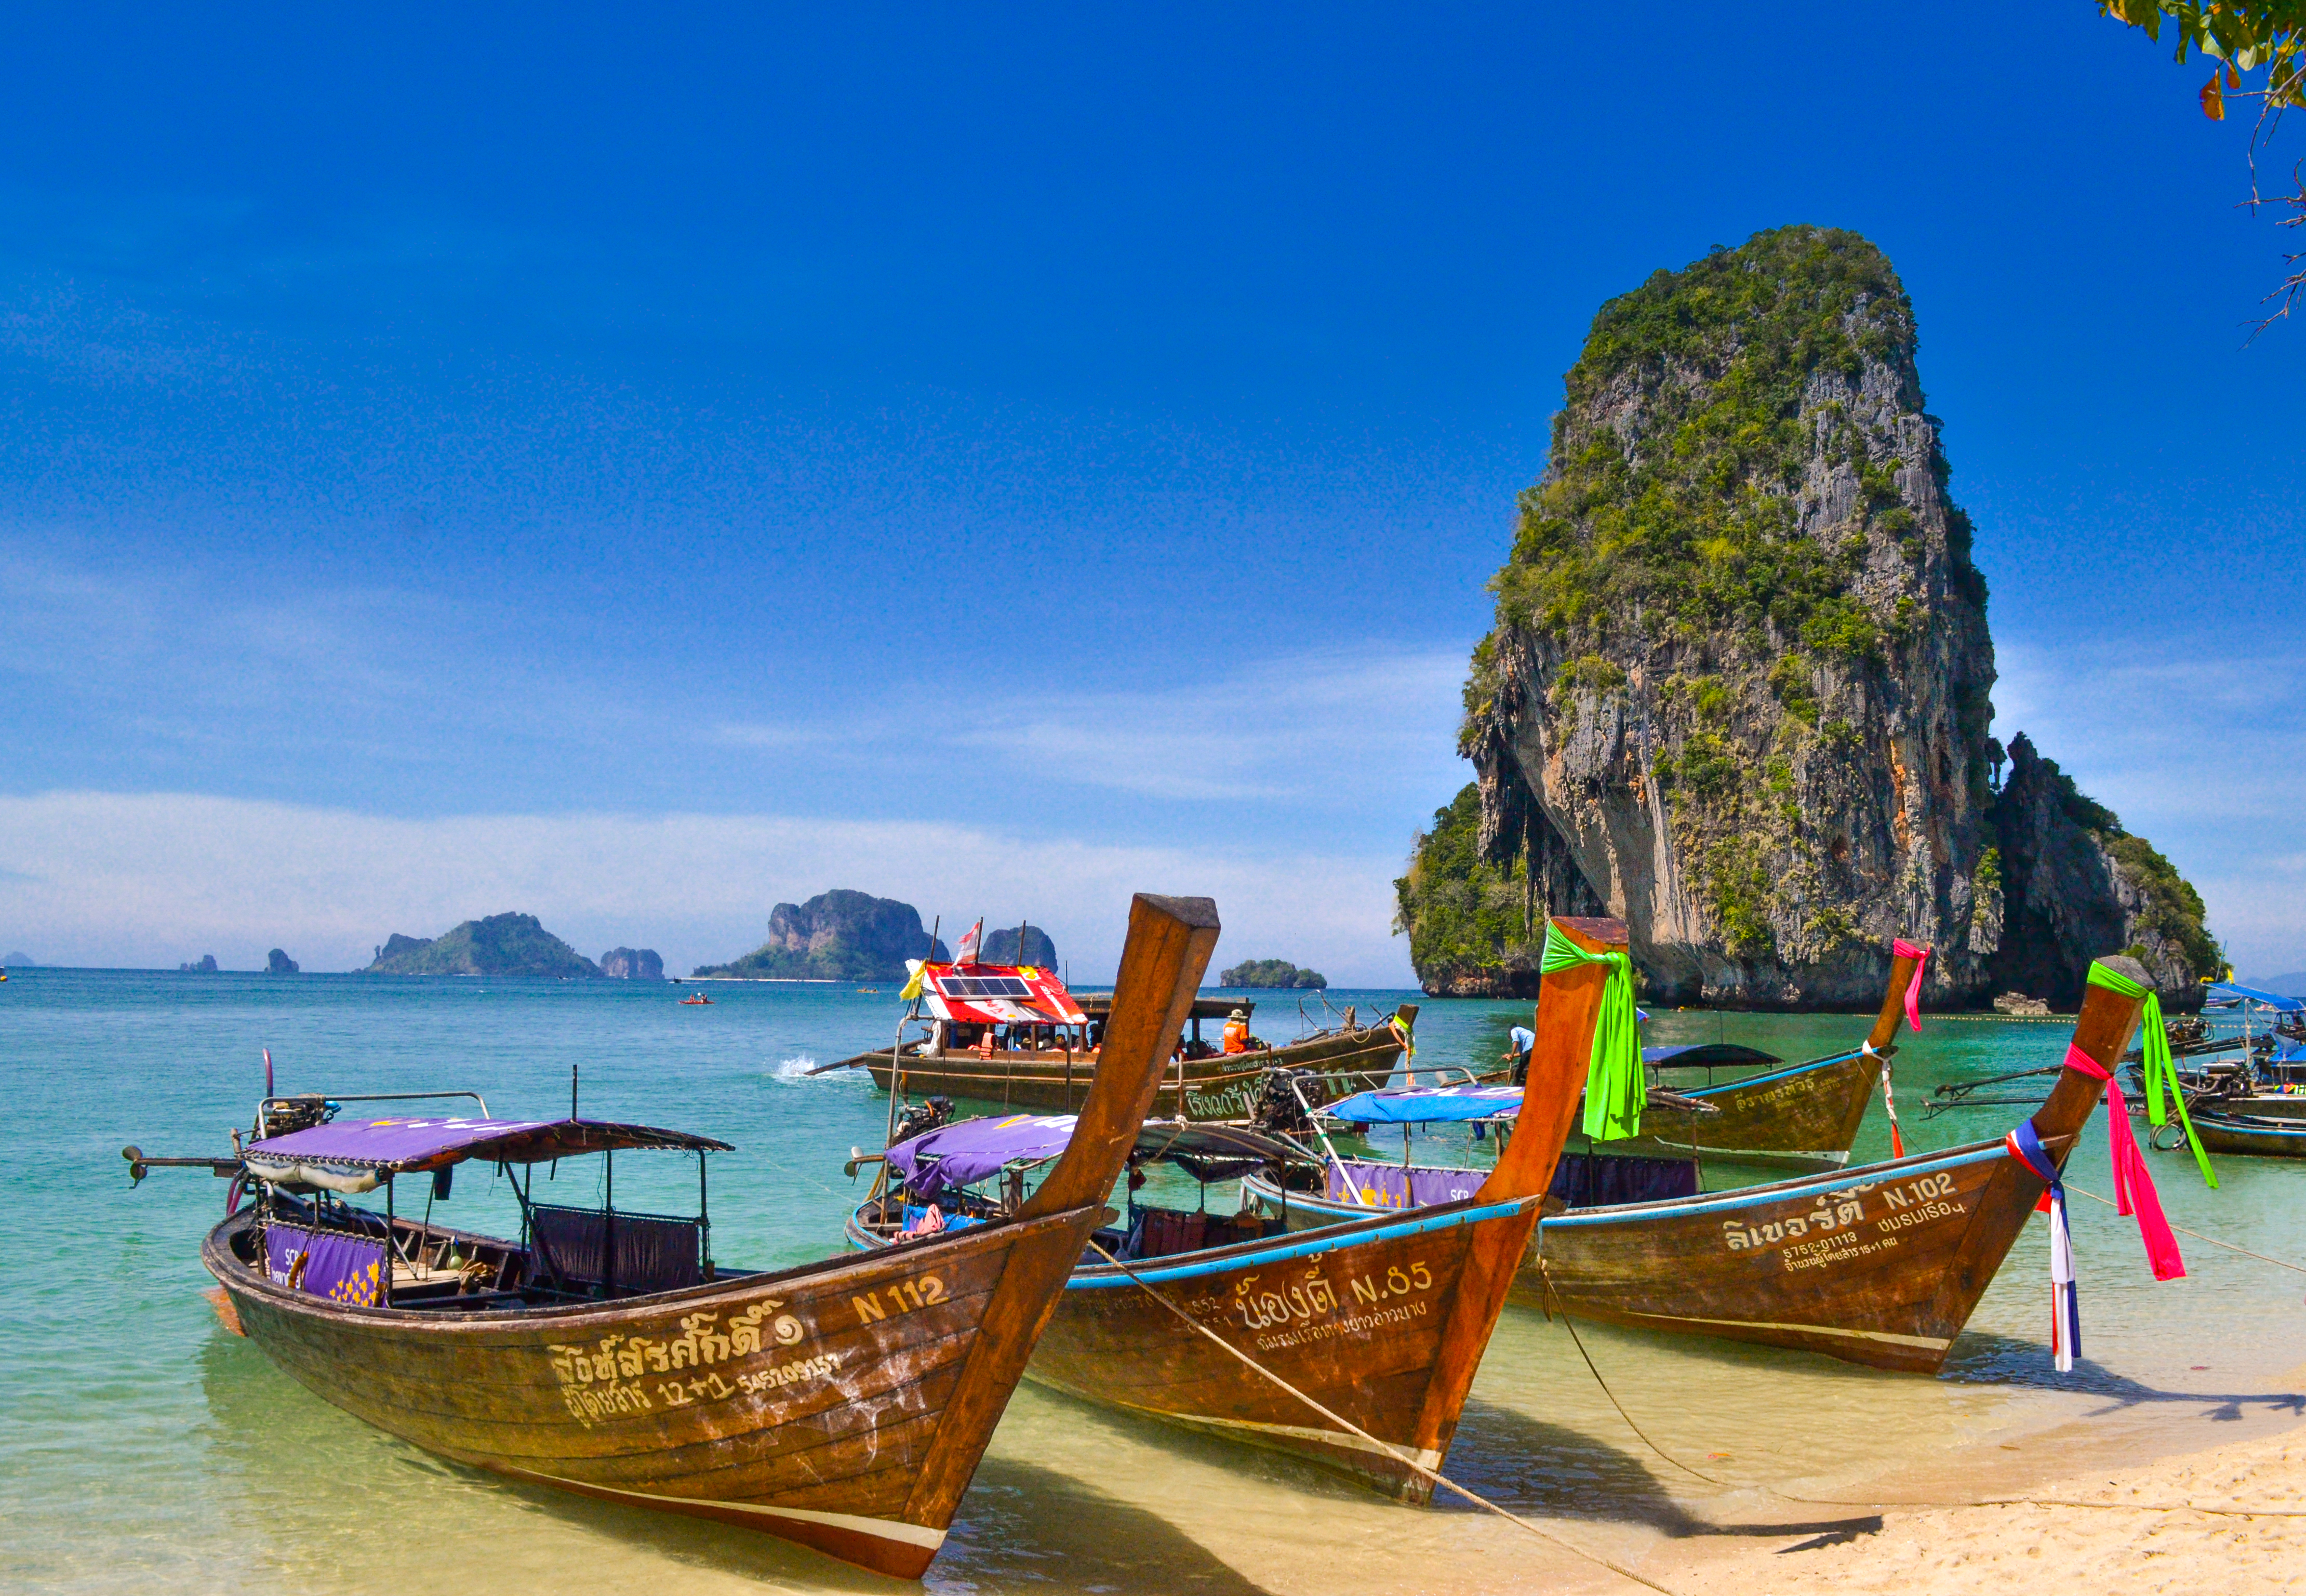 Boat on small island in Thailand Photo Wallpaper Decor Paper Wall Background